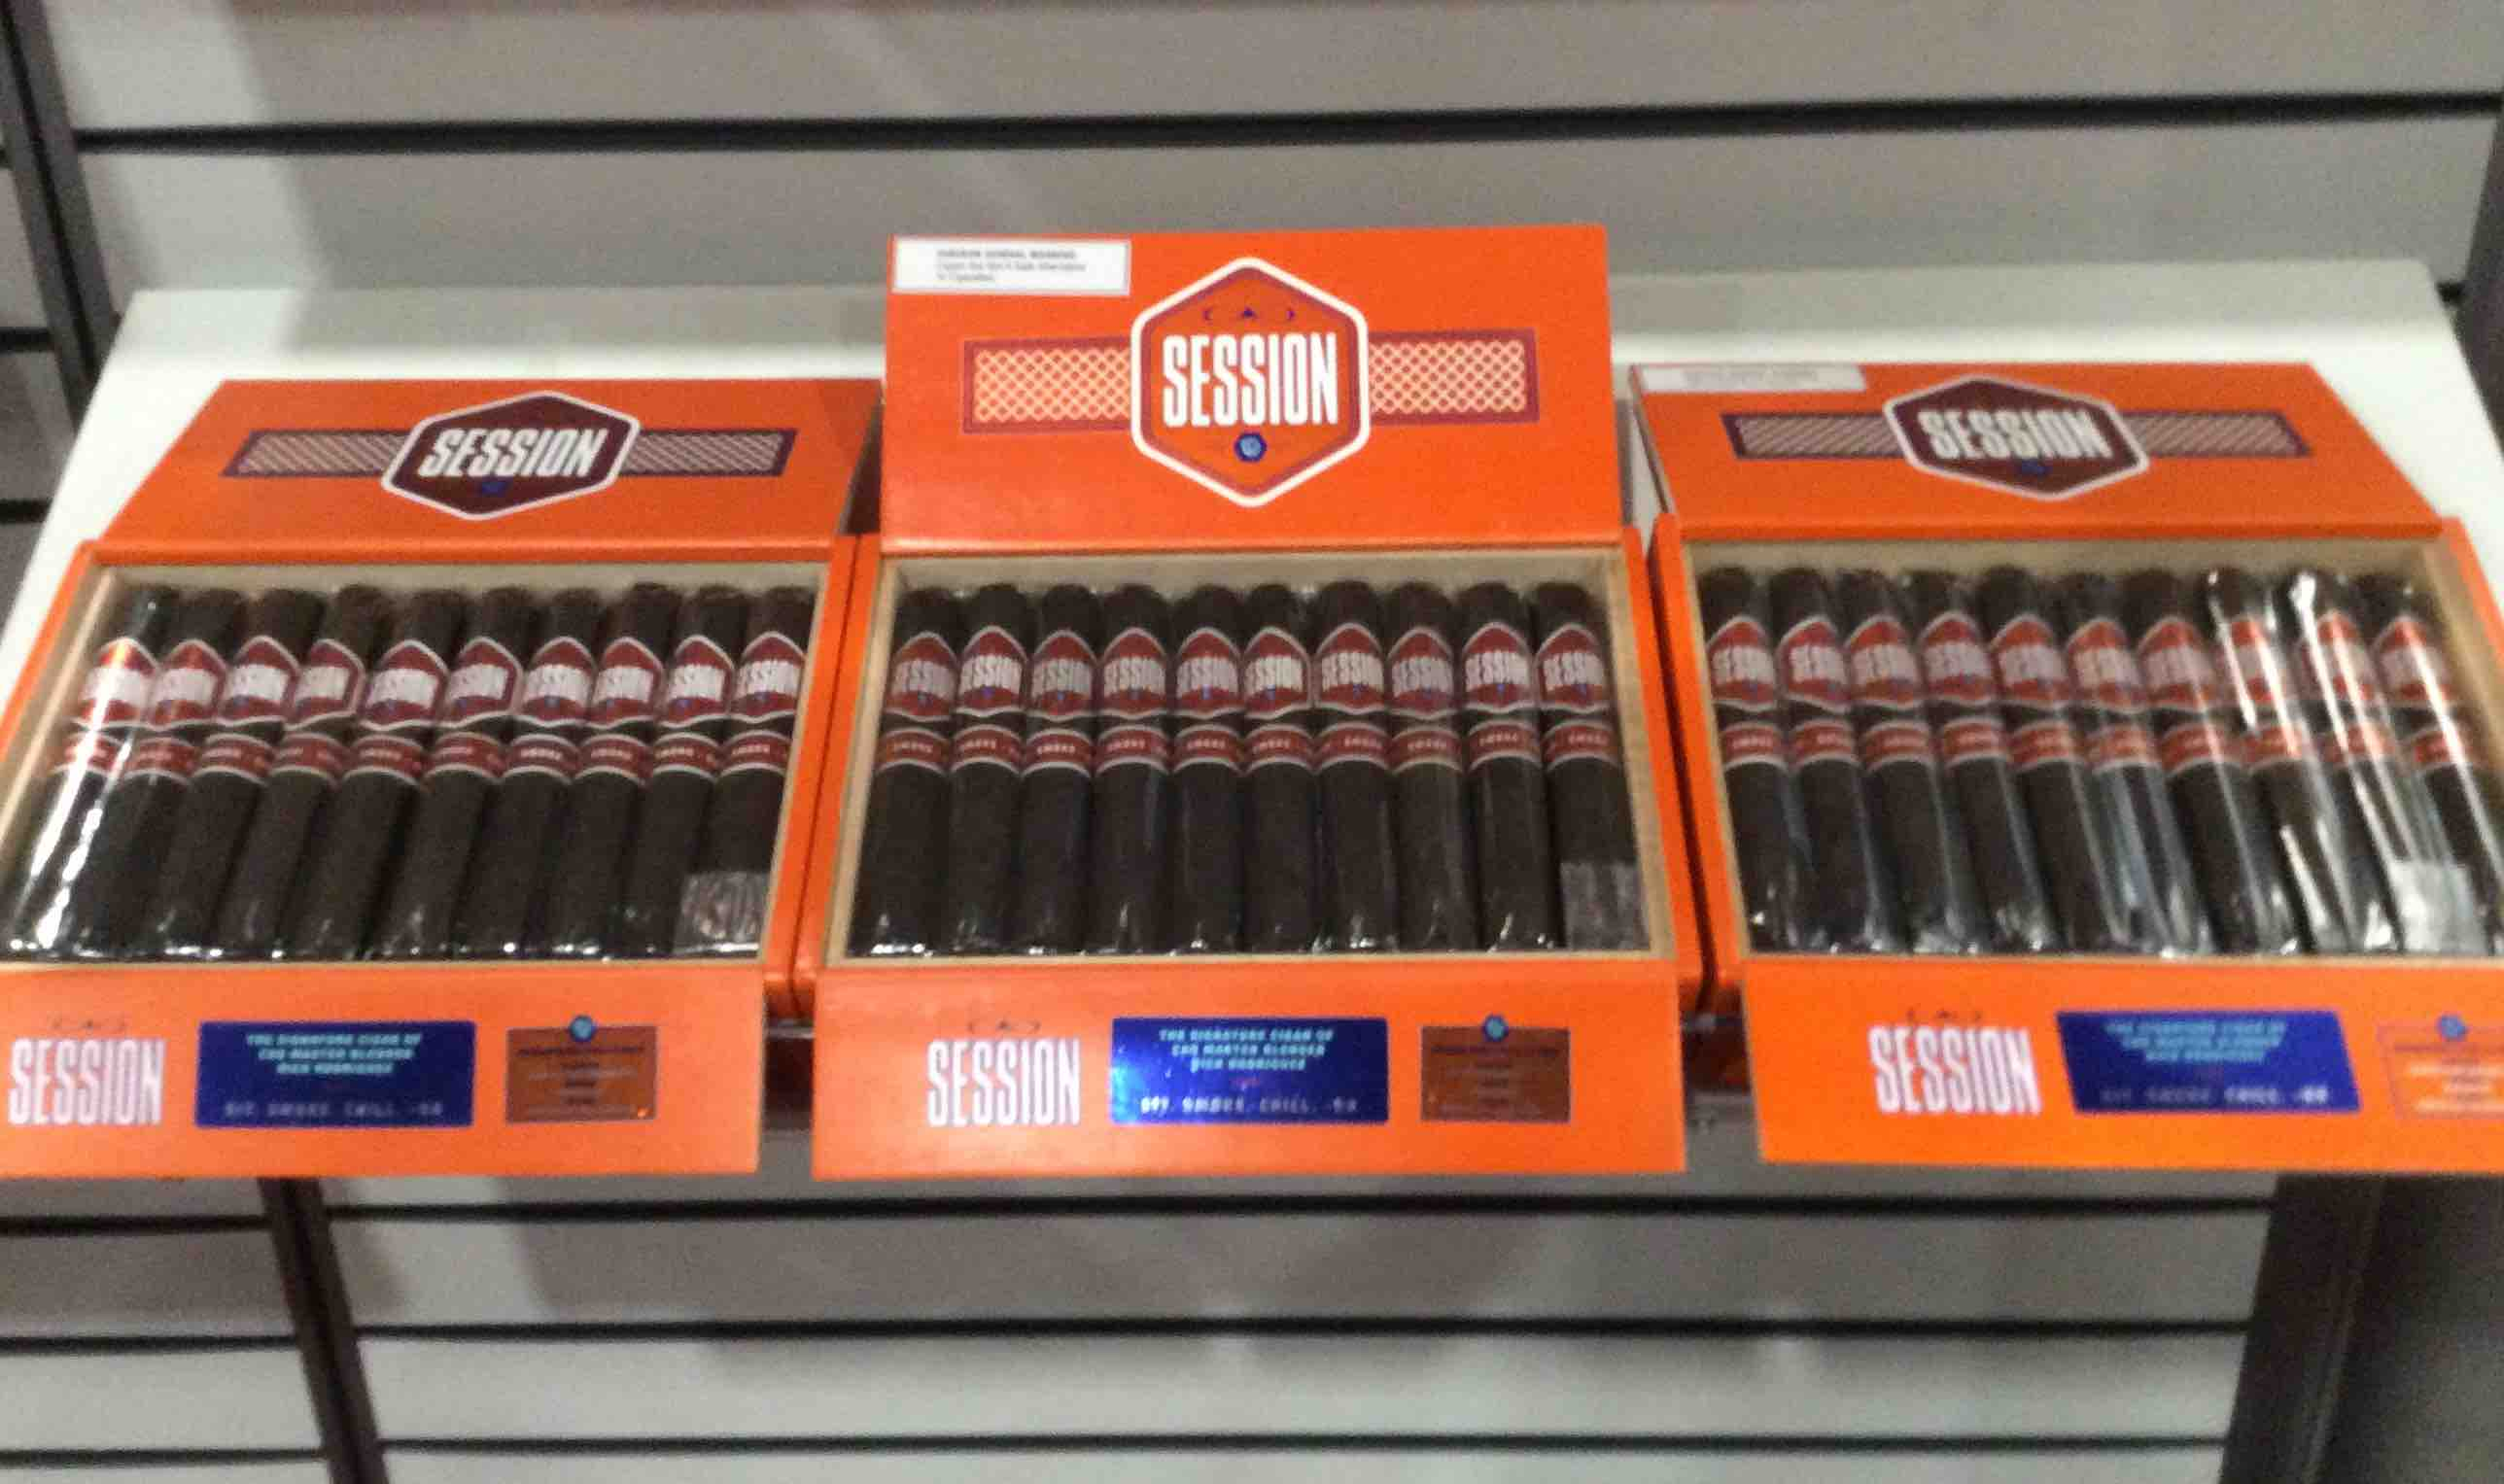 Cigar News: CAO Session Introduced at 2019 IPCPR